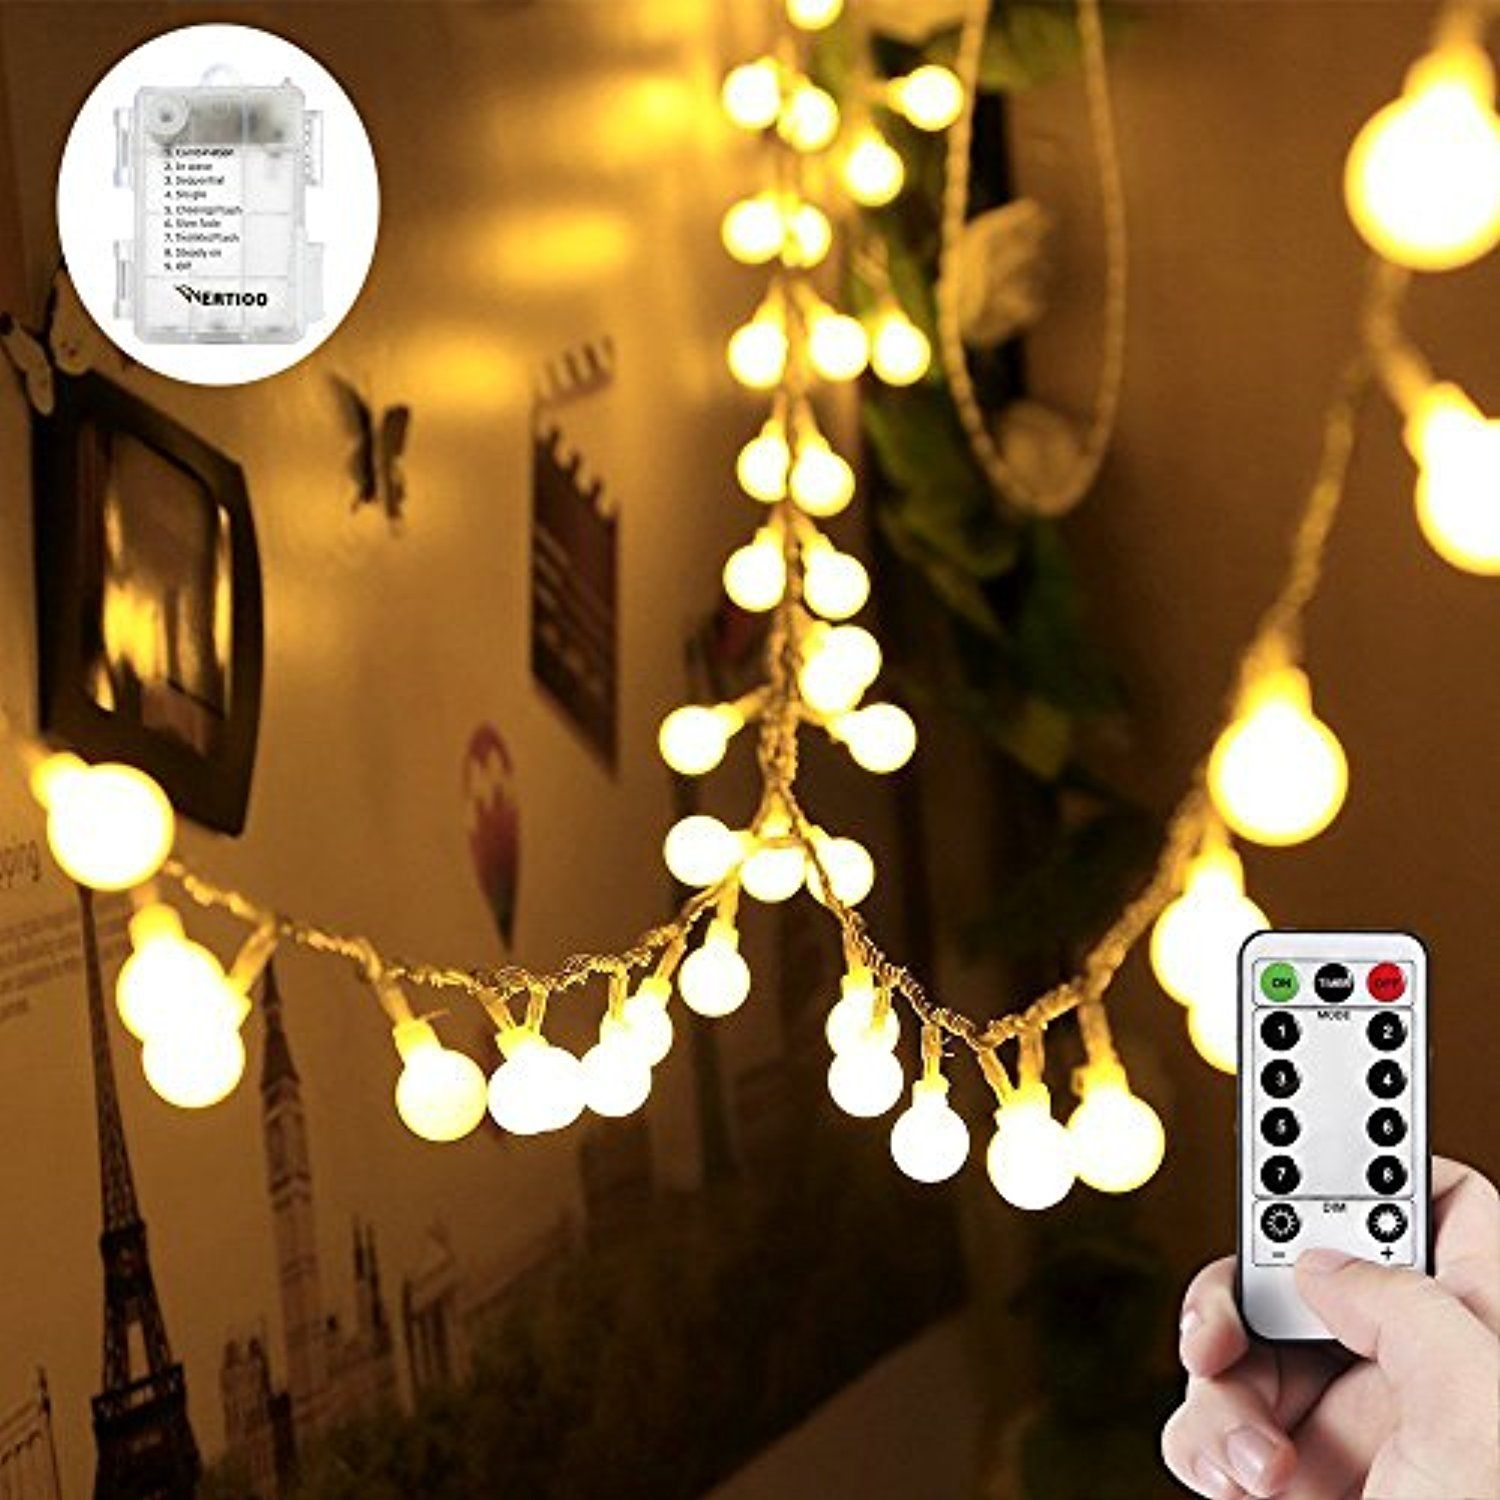 33ft 100 leds battery operated string lights wertioo golbe fairy lights with remote control for outdoorindoor bedroomgardenchristmas treehalloween 8